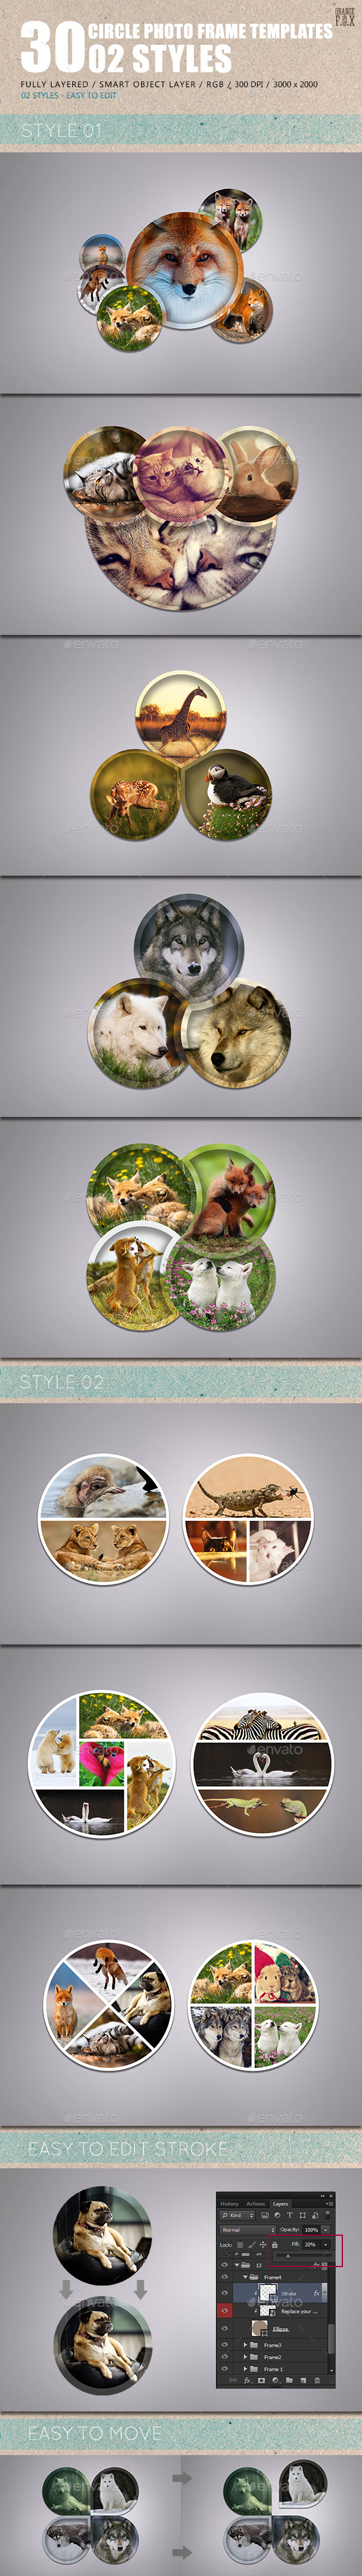 GraphicRiver 30 Circle Photo Frame Templates 02 Styles 10313792